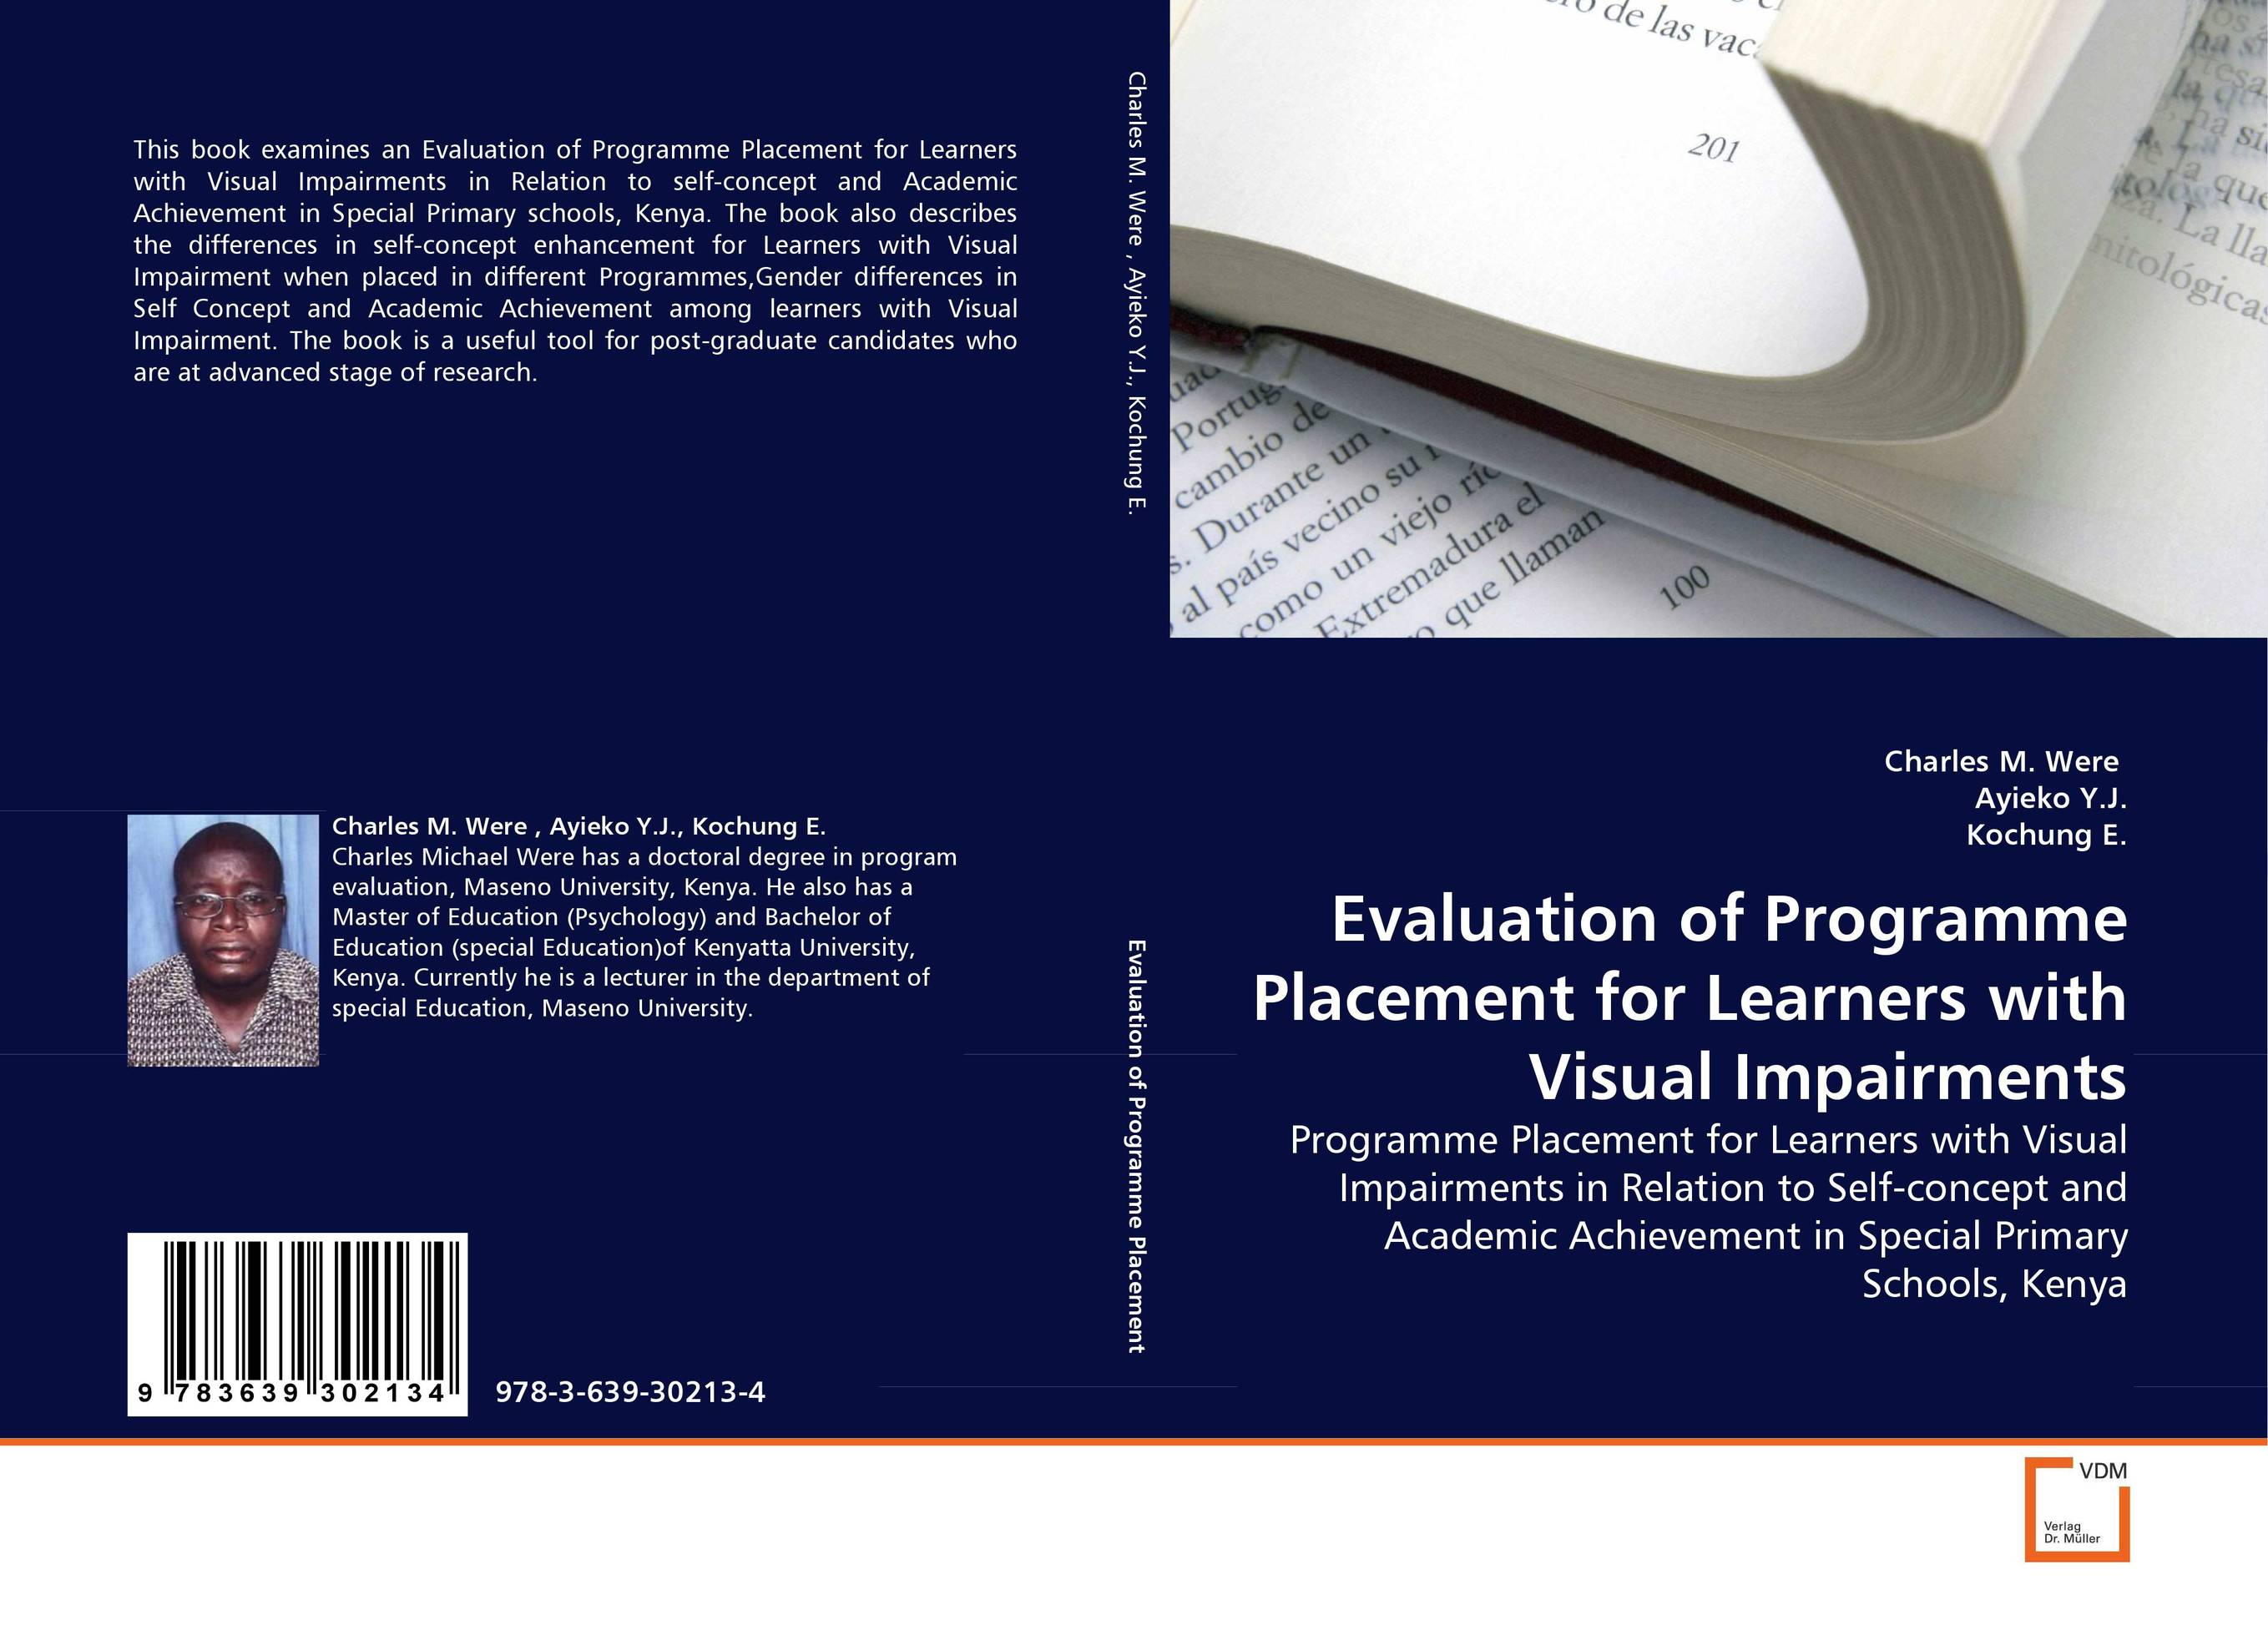 Evaluation of Programme Placement for Learners with Visual Impairments development of self instructional material for distant learners